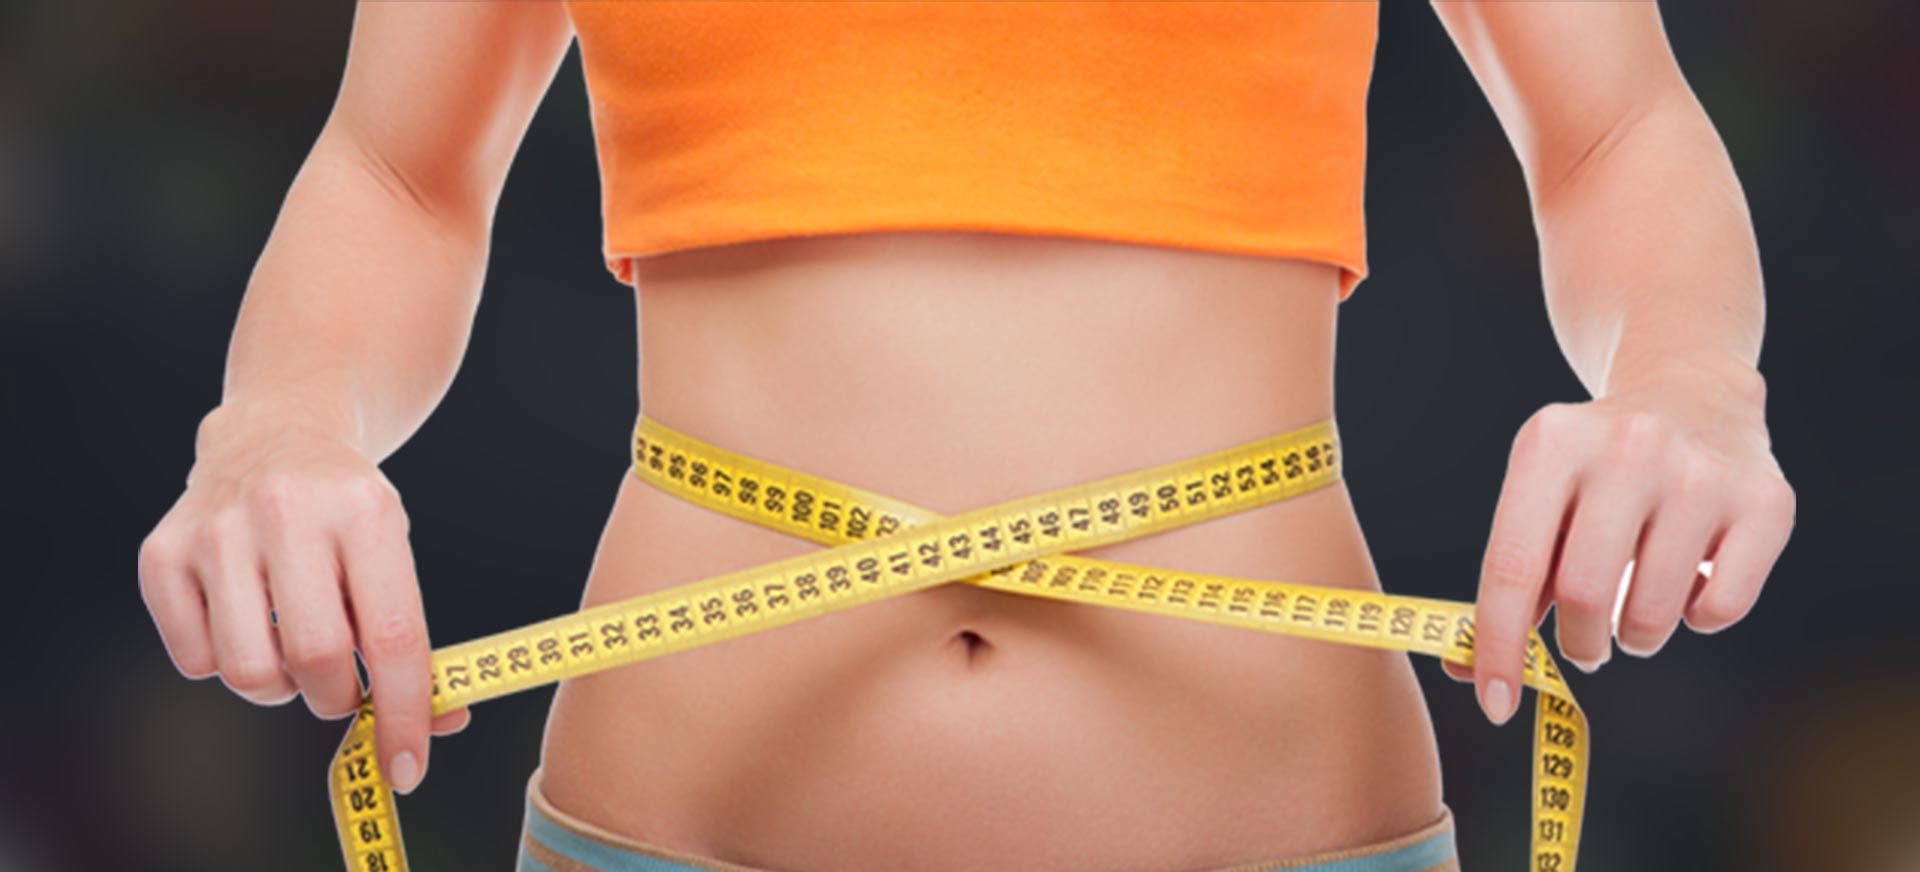 Is Metabolic Detoxification Program Right For You